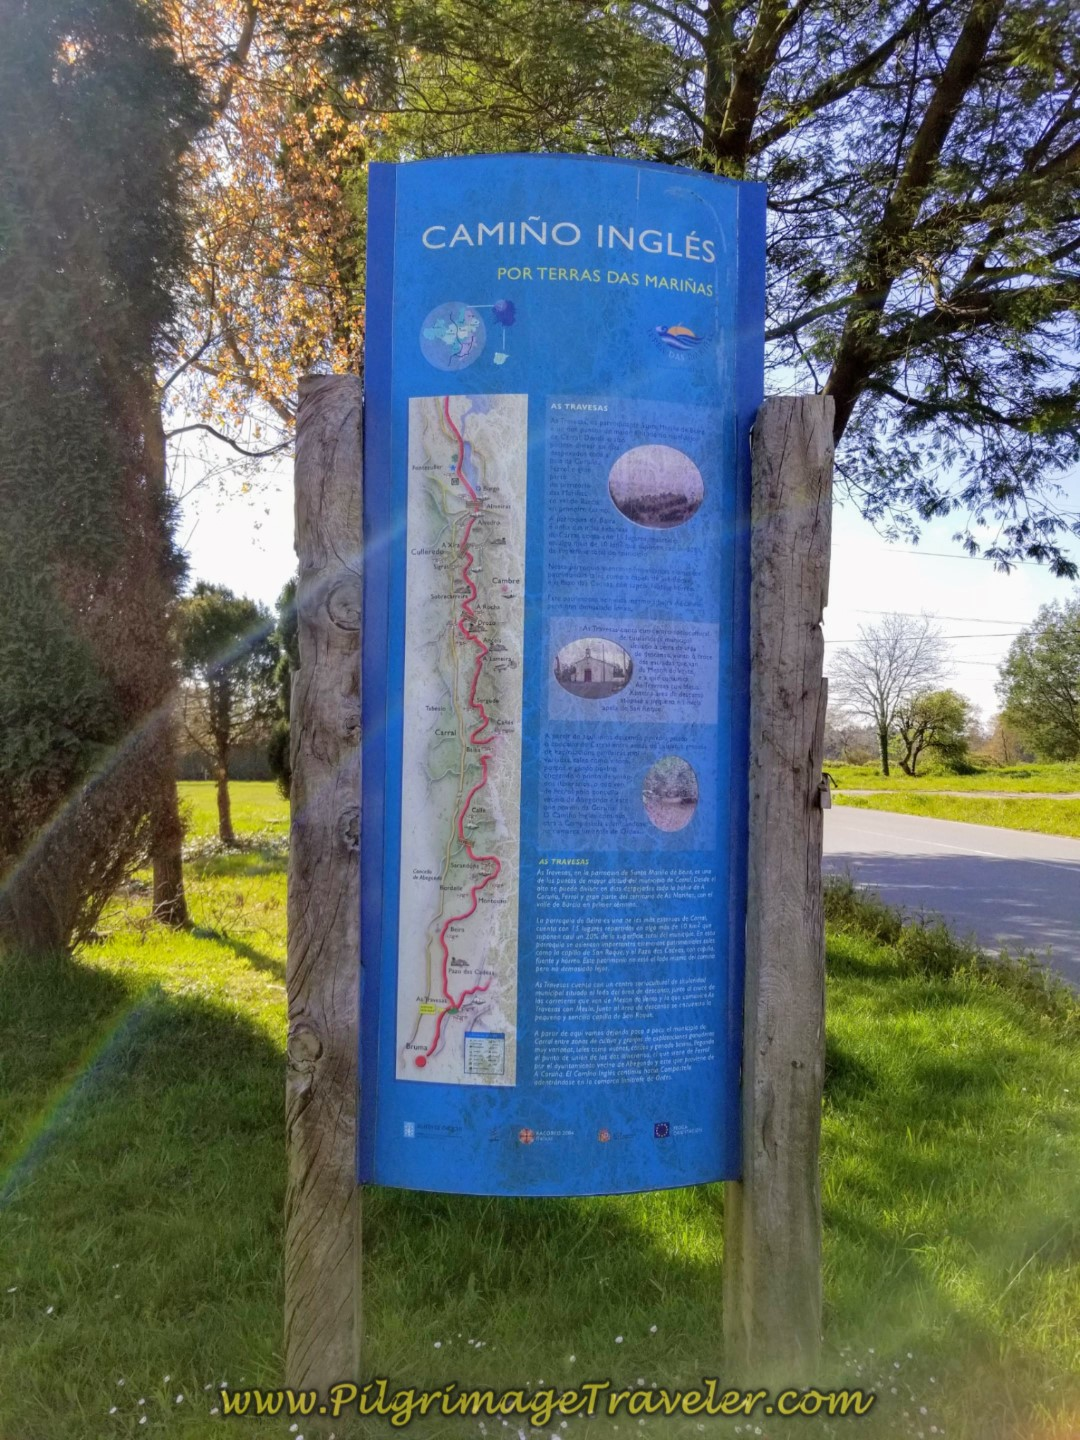 Information Board in As Travesas on day two of the La Coruña Arm of the Camino Inglés